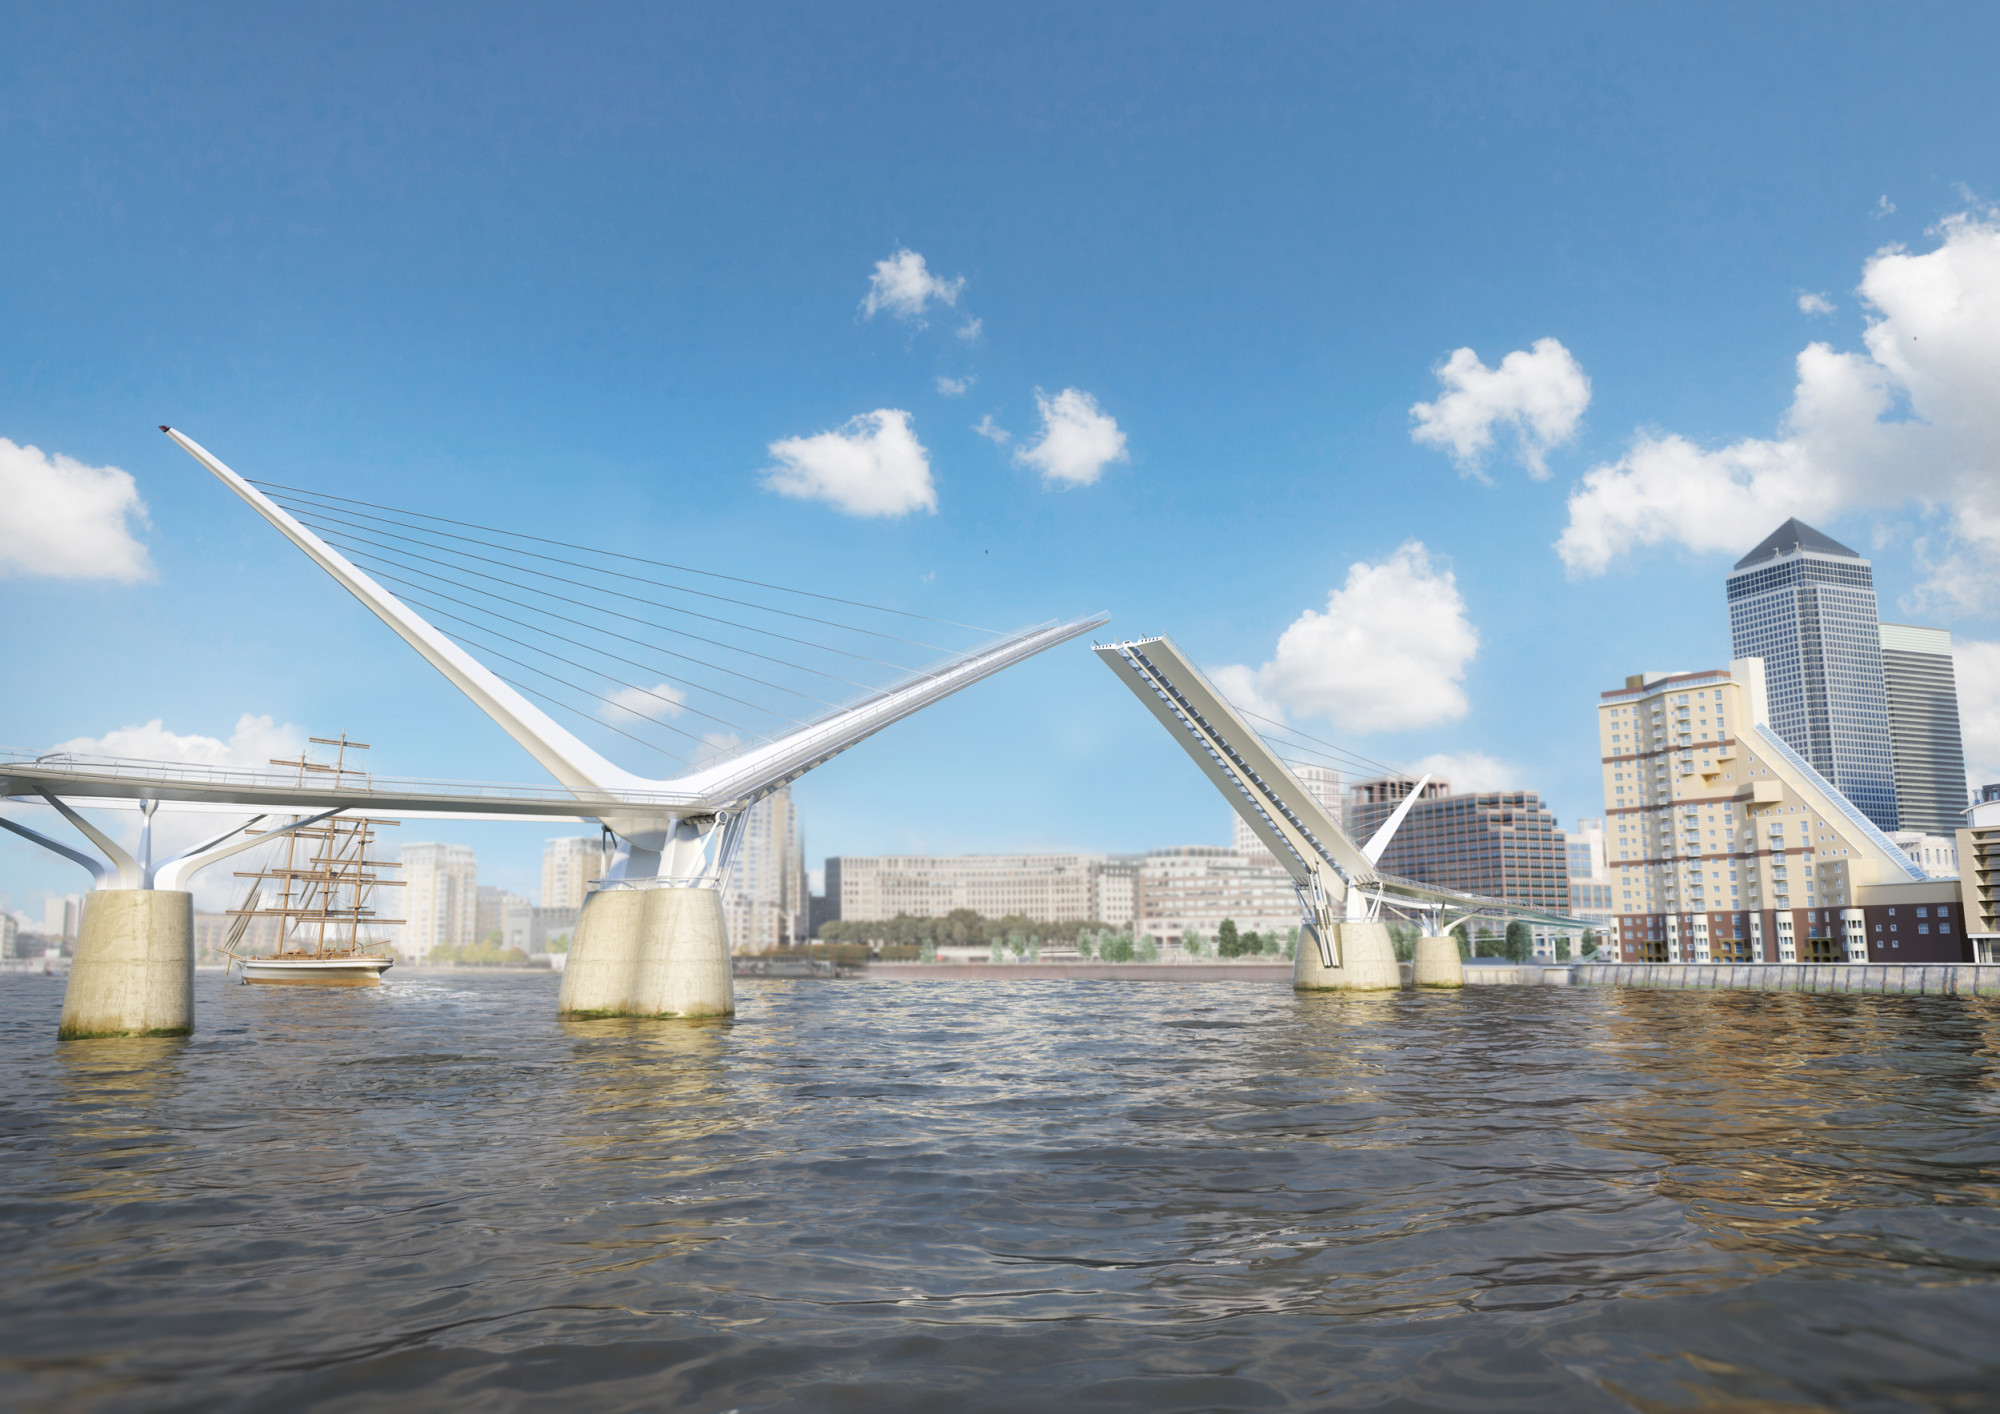 reForm-Architects-Rotherhithe-Bridge-Transport-Visual-Half-Open-Bridge-2000x0-c-default